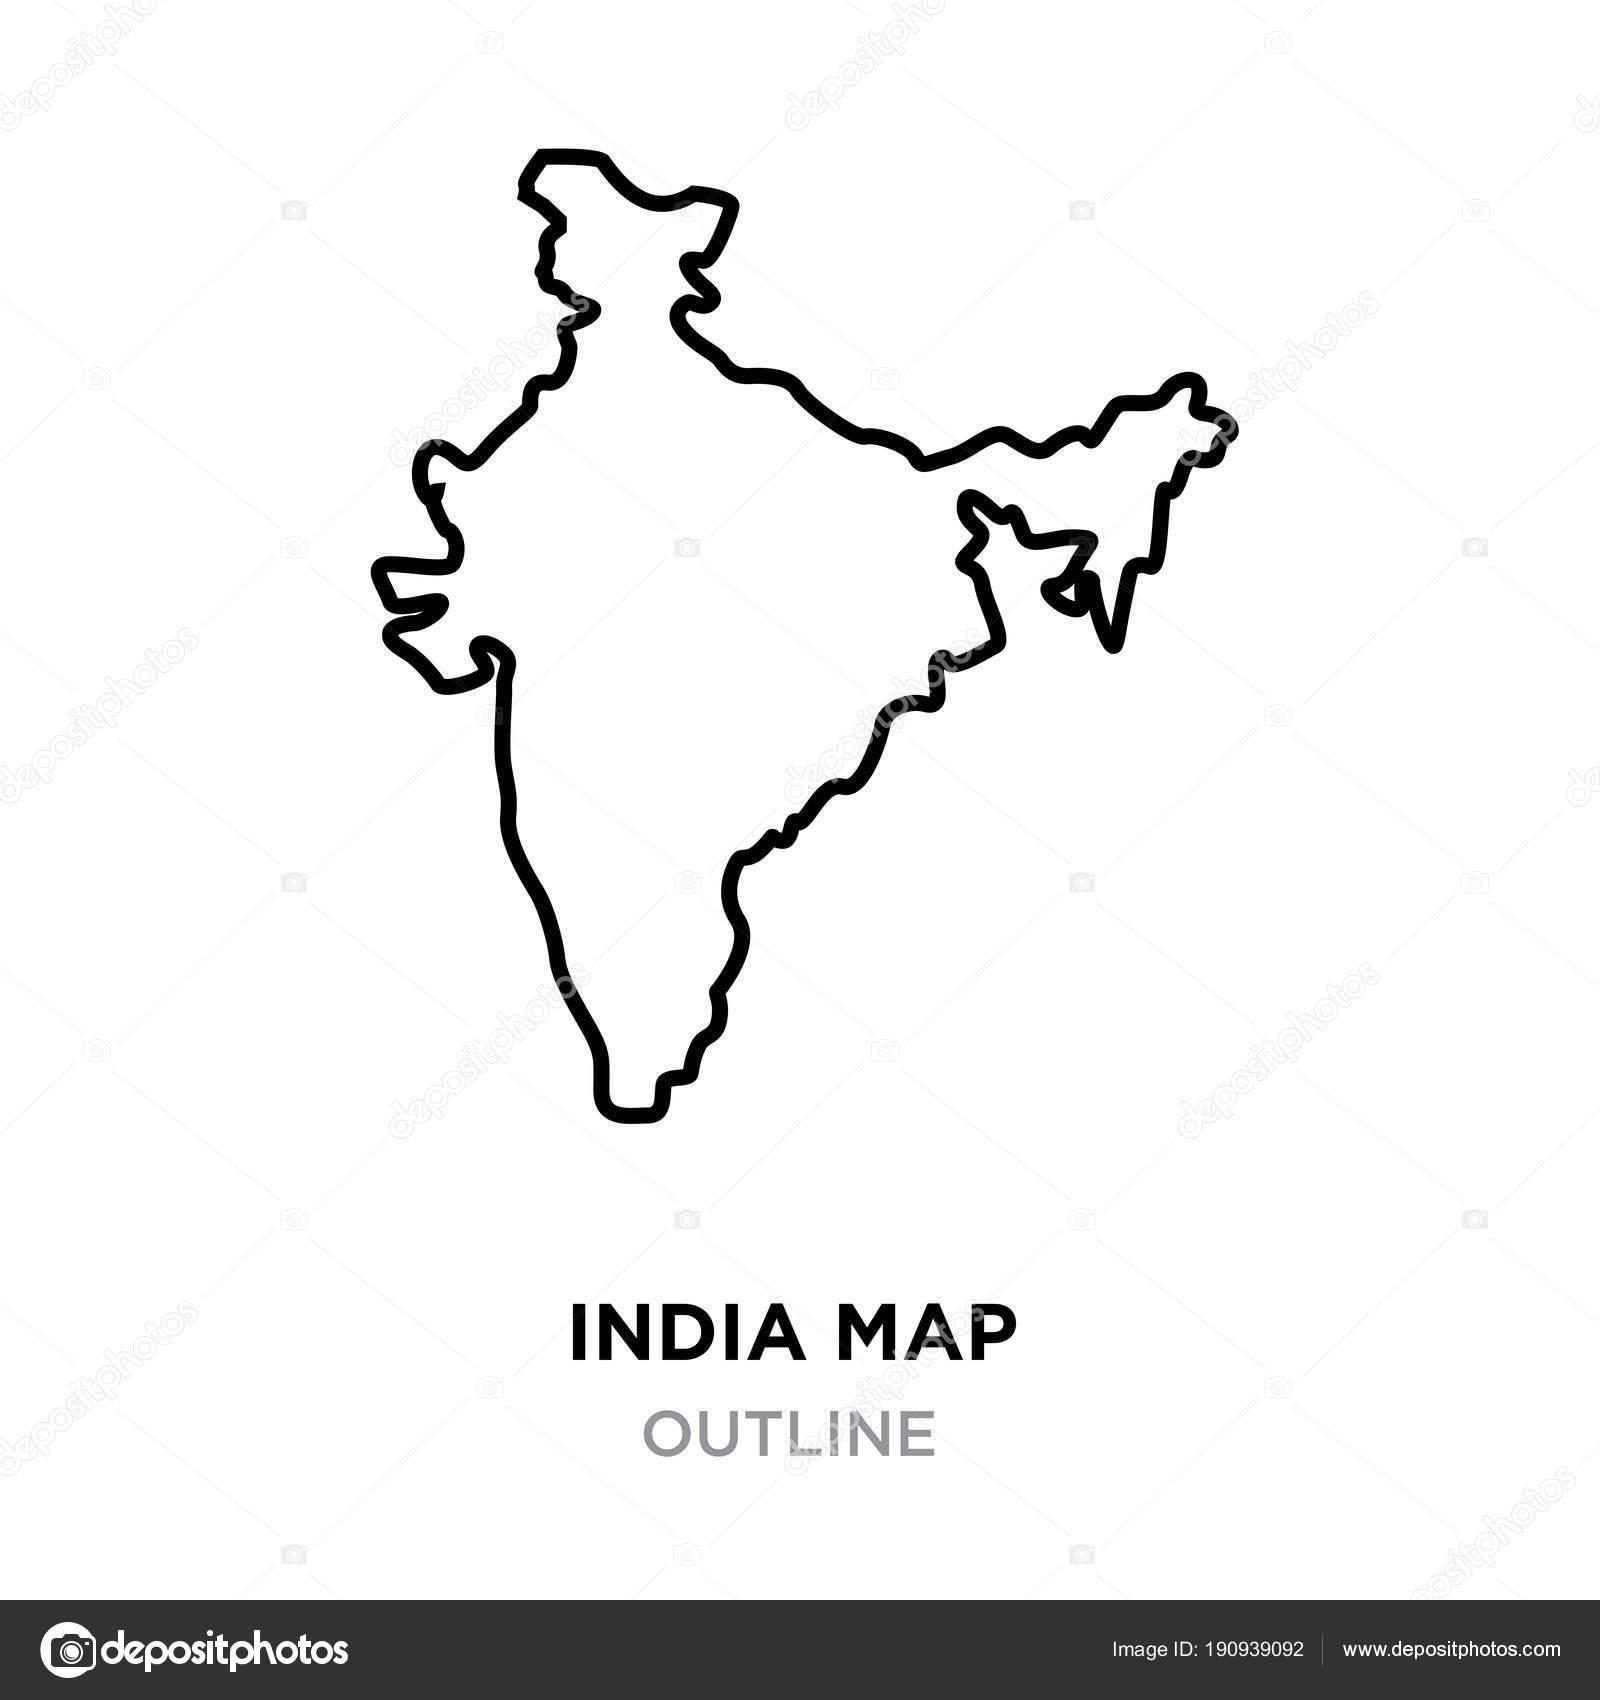 World map outline high resolution png | India map outline ...